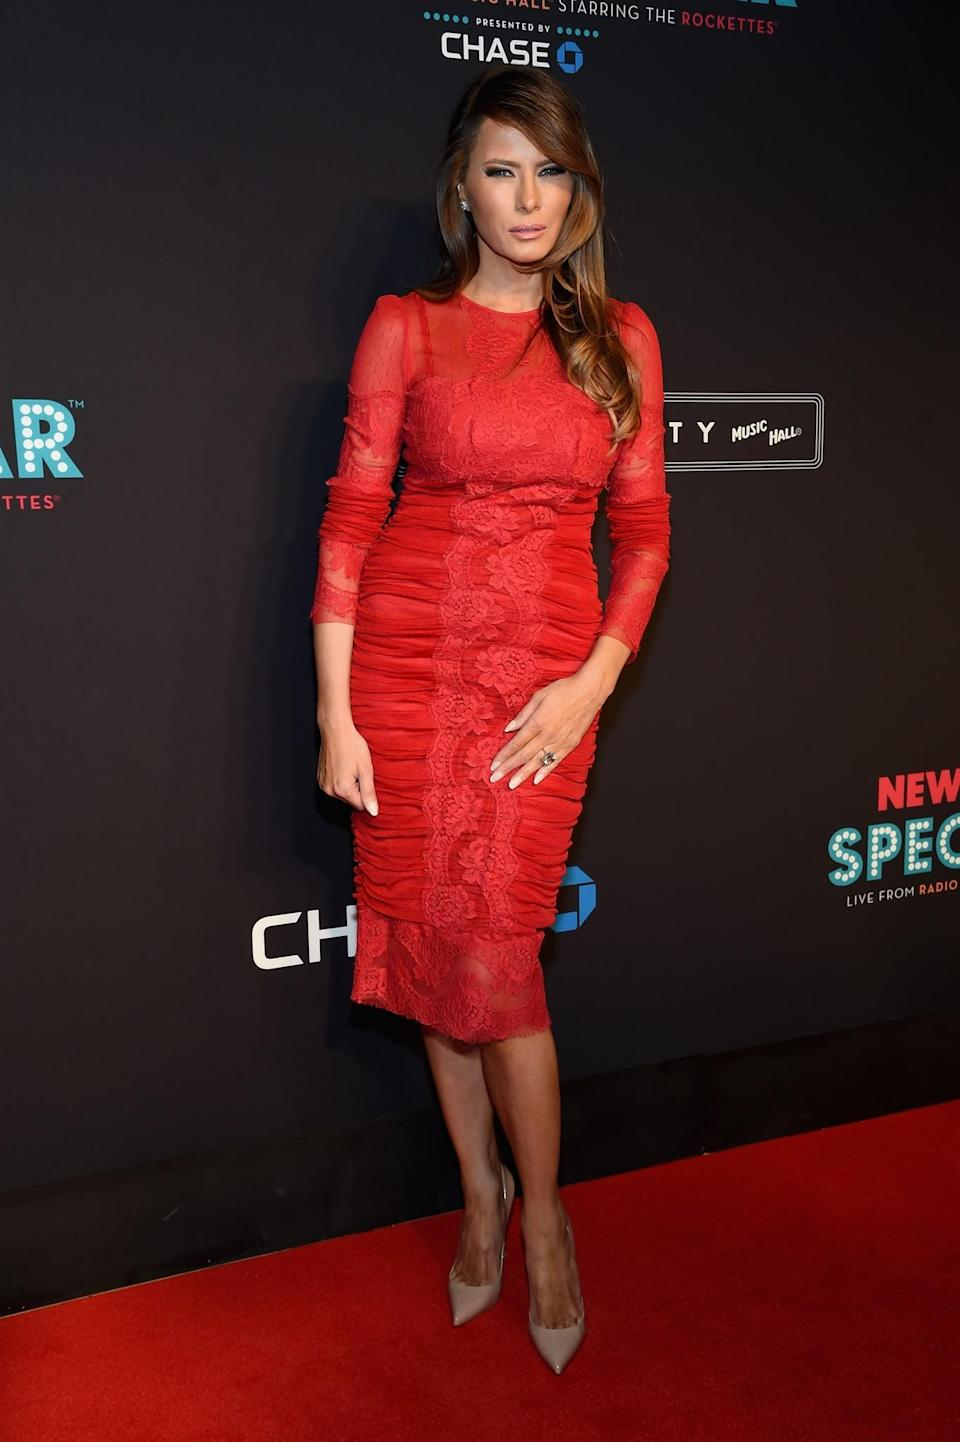 <p>Melania attended an event in New York wearing a rushed red dress complete with lacy detailing and a pair of nude stilettos. <i>[Photo: Getty]</i> </p>